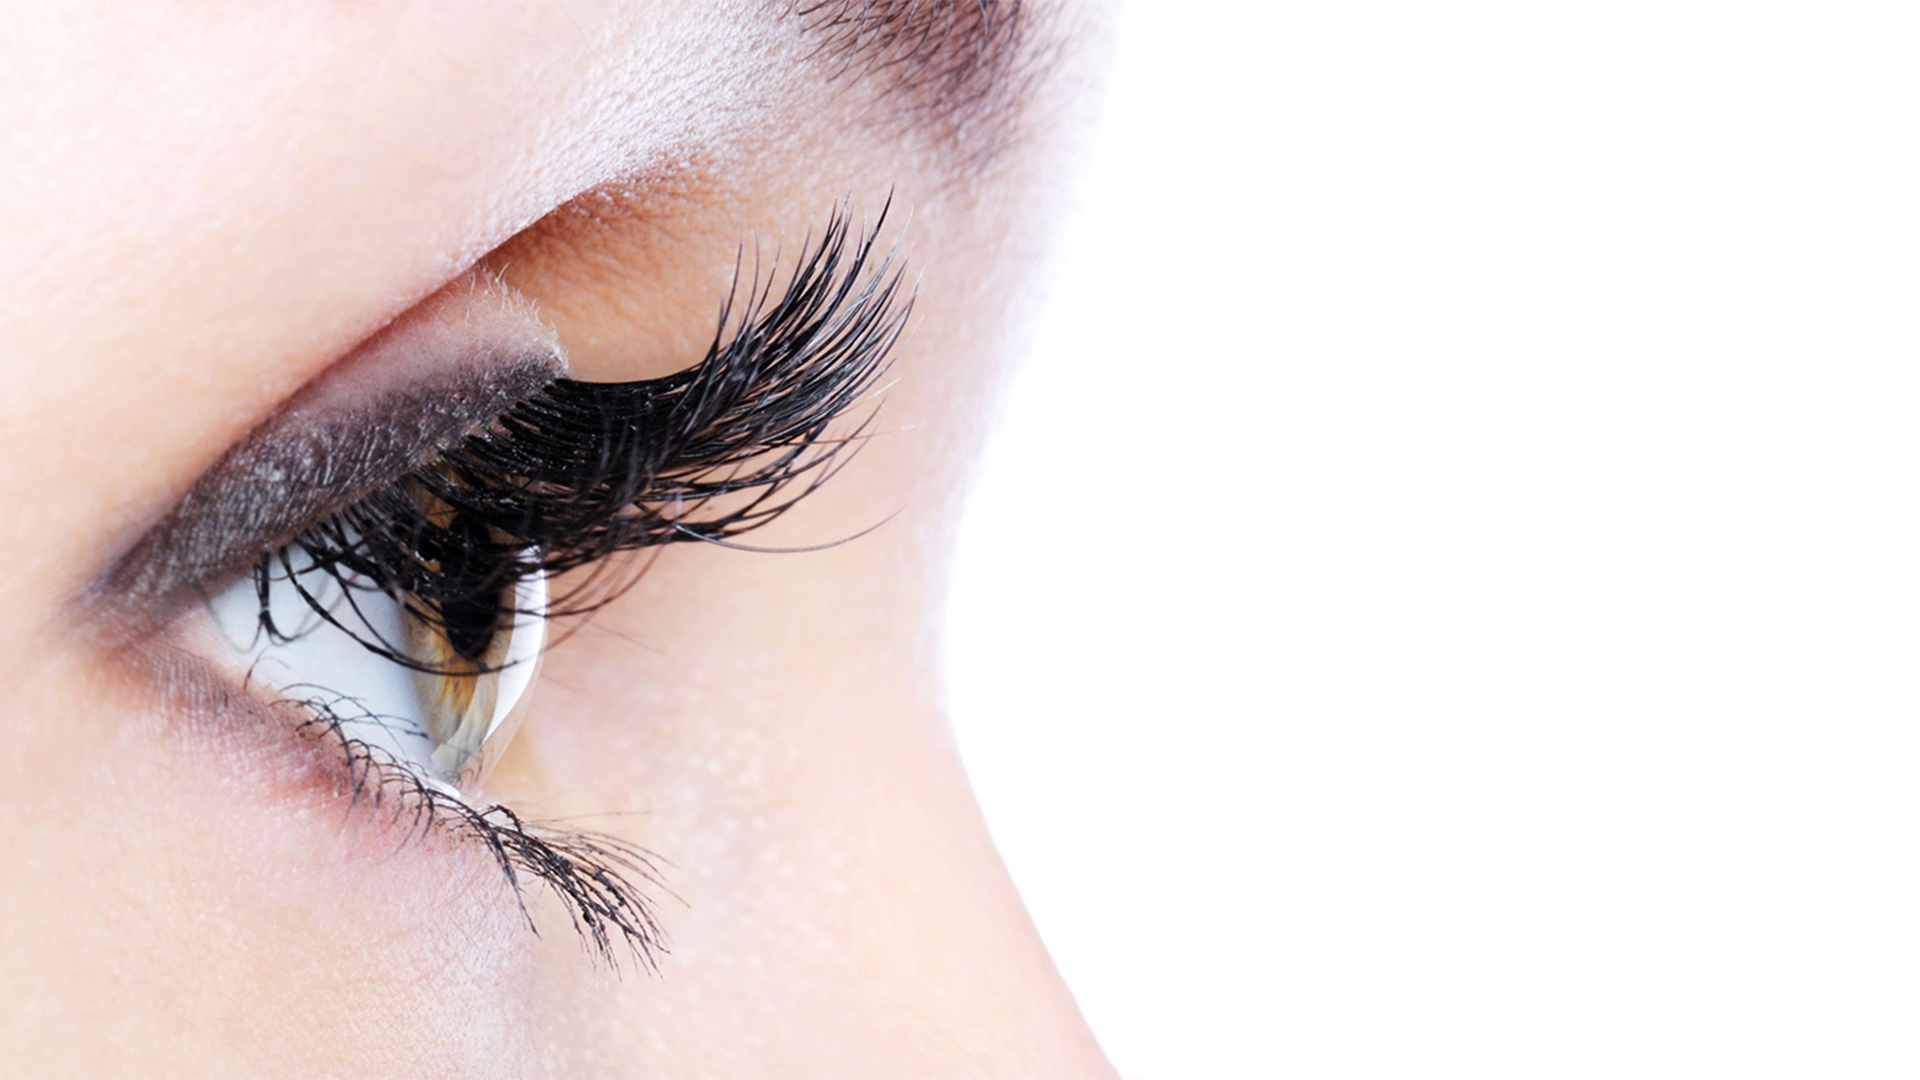 Get Naturally Thick Long Eyelashes with BIOLUMA eyelash growth serum